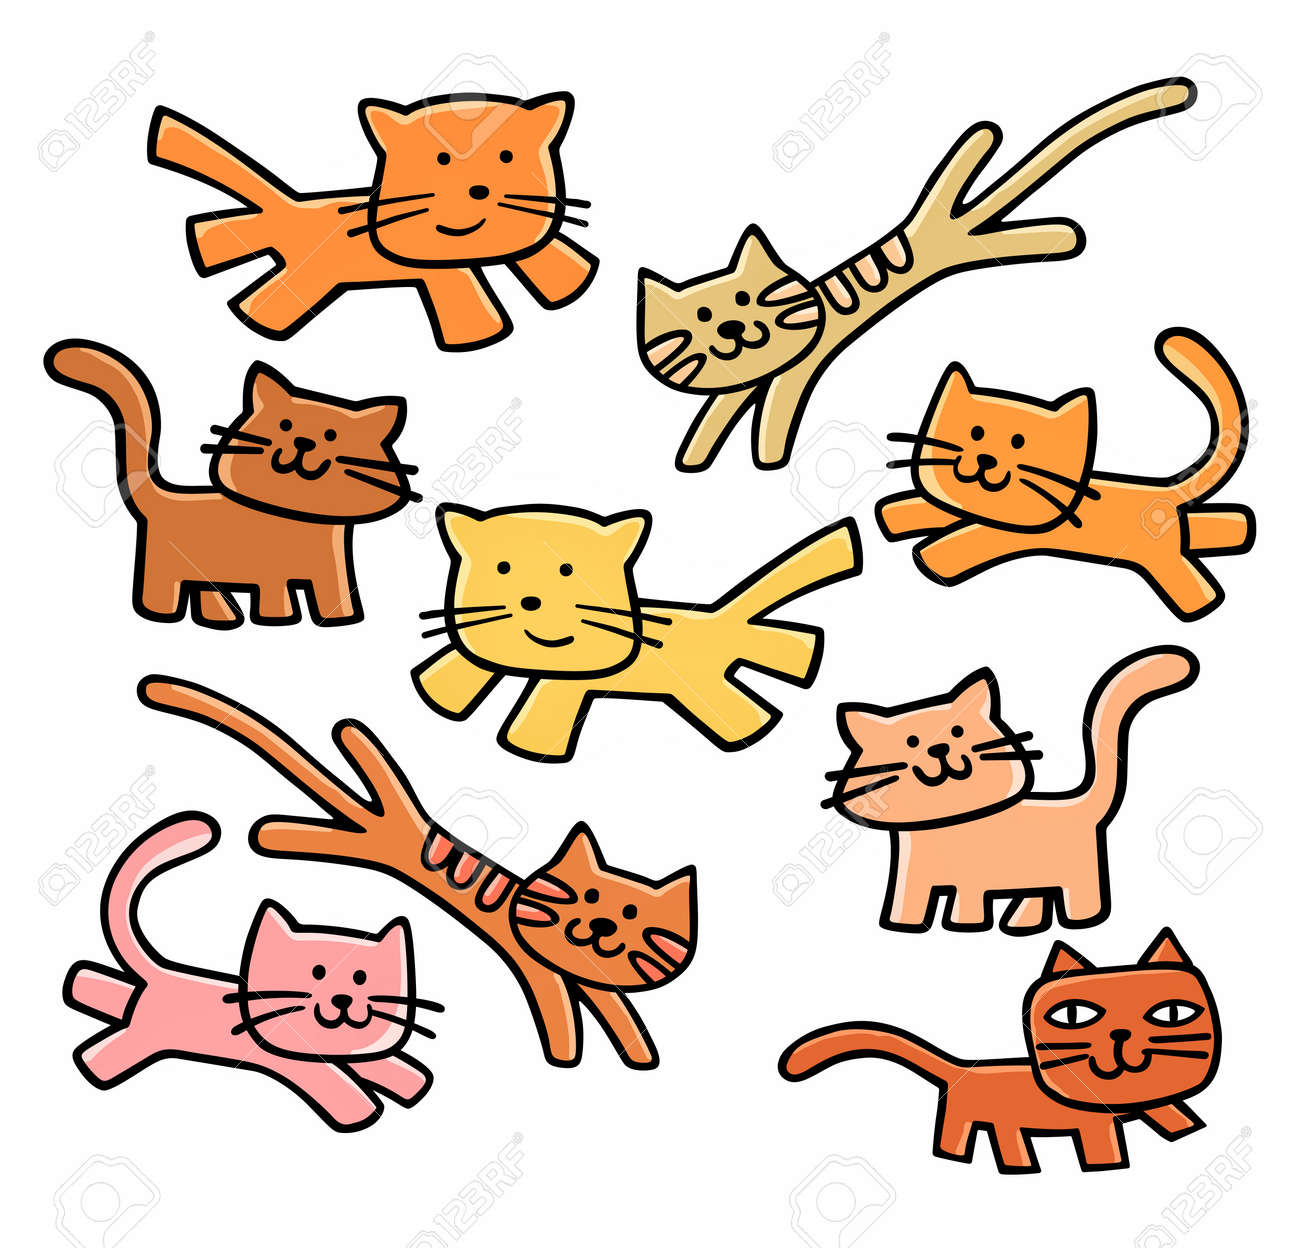 cute cats clipart royalty free cliparts vectors and stock rh 123rf com cat clipart free cat clipart free